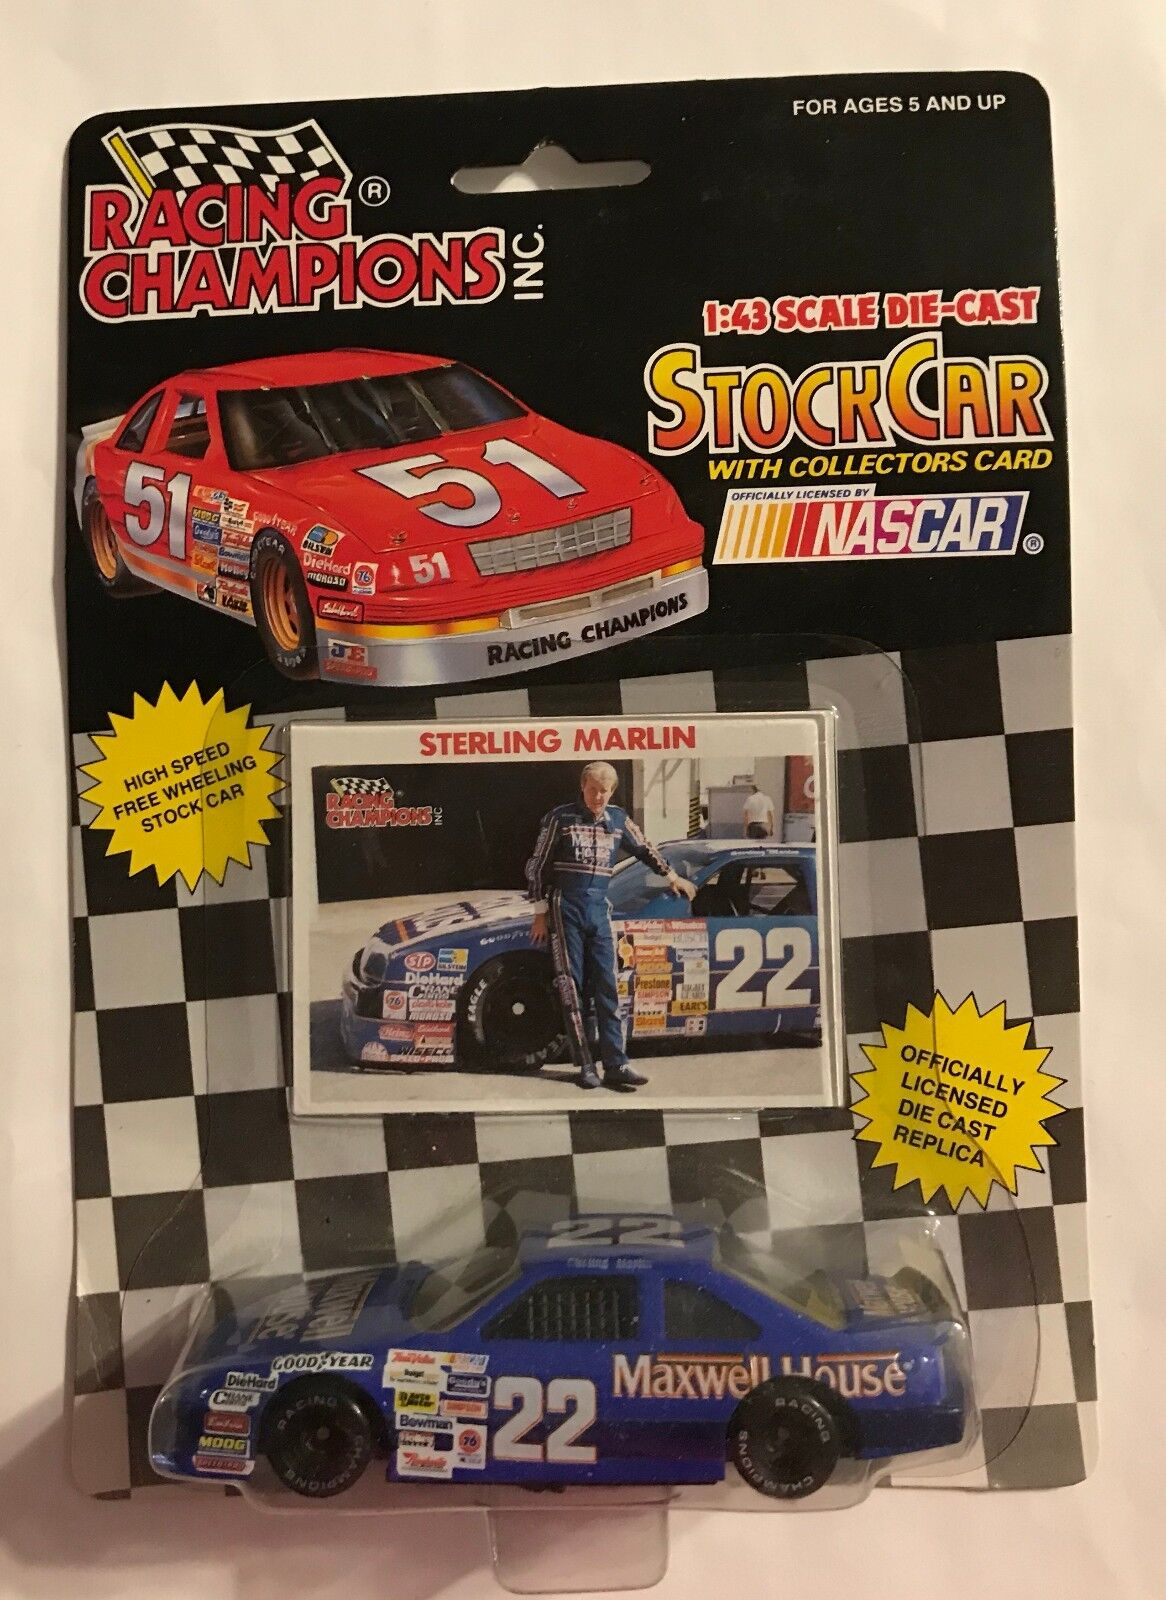 Diecast Toy Vehicles Toys Hobbies Hotwheels Vw Drag Bus Mnm Rare 1992 Racing Champions 22 Sterling Marlin Maxwell House 1 43rd Ford